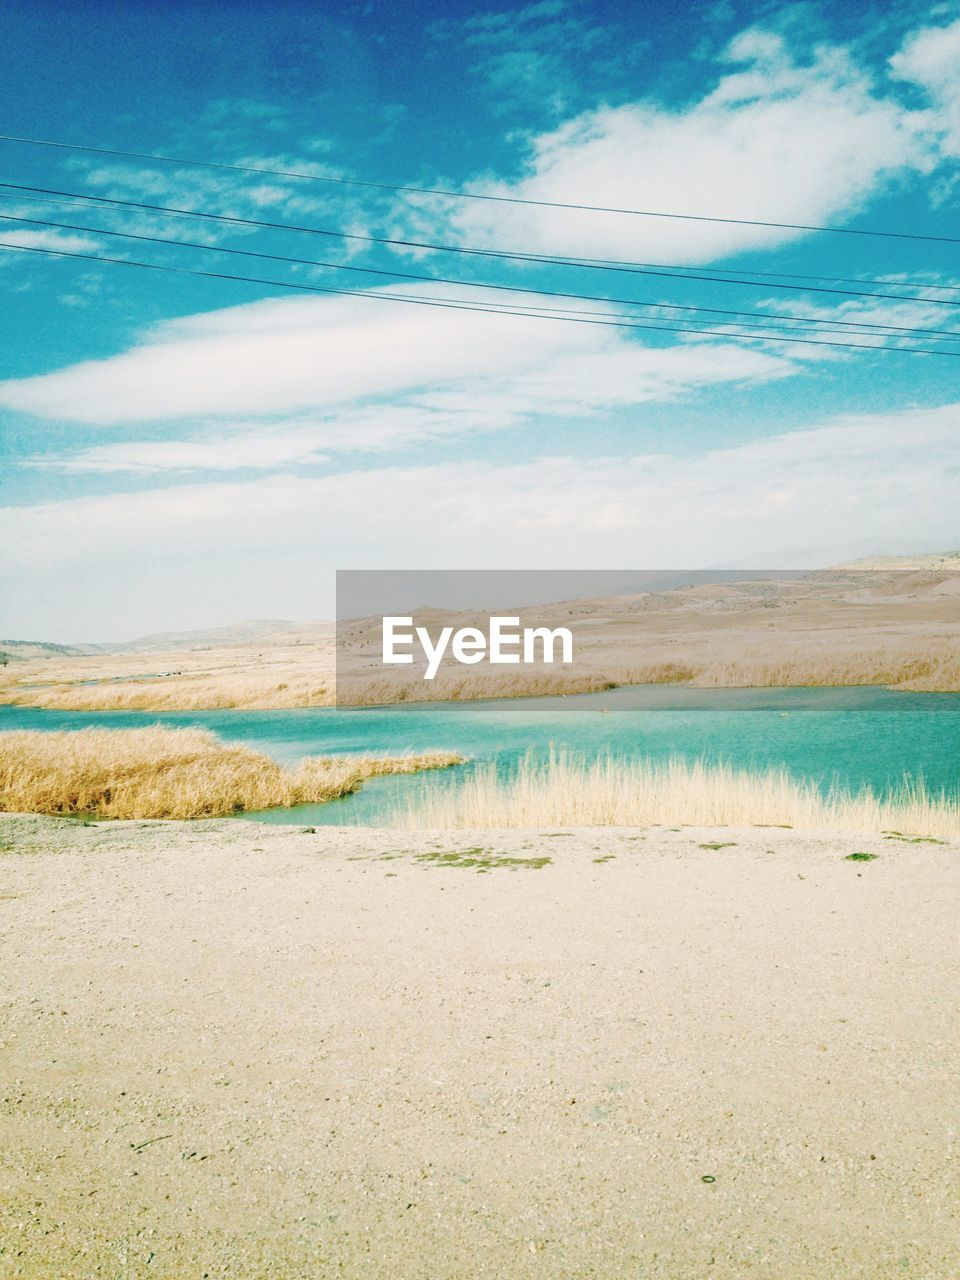 Kohmare_sorkhi Kohmare Shīrāz Iran River Water Sky Beauty In Nature Scenics - Nature Land Animal Tranquility Cloud - Sky No People Environment Nature Day Outdoors The Great Outdoors - 2019 EyeEm Awards The Mobile Photographer - 2019 EyeEm Awards